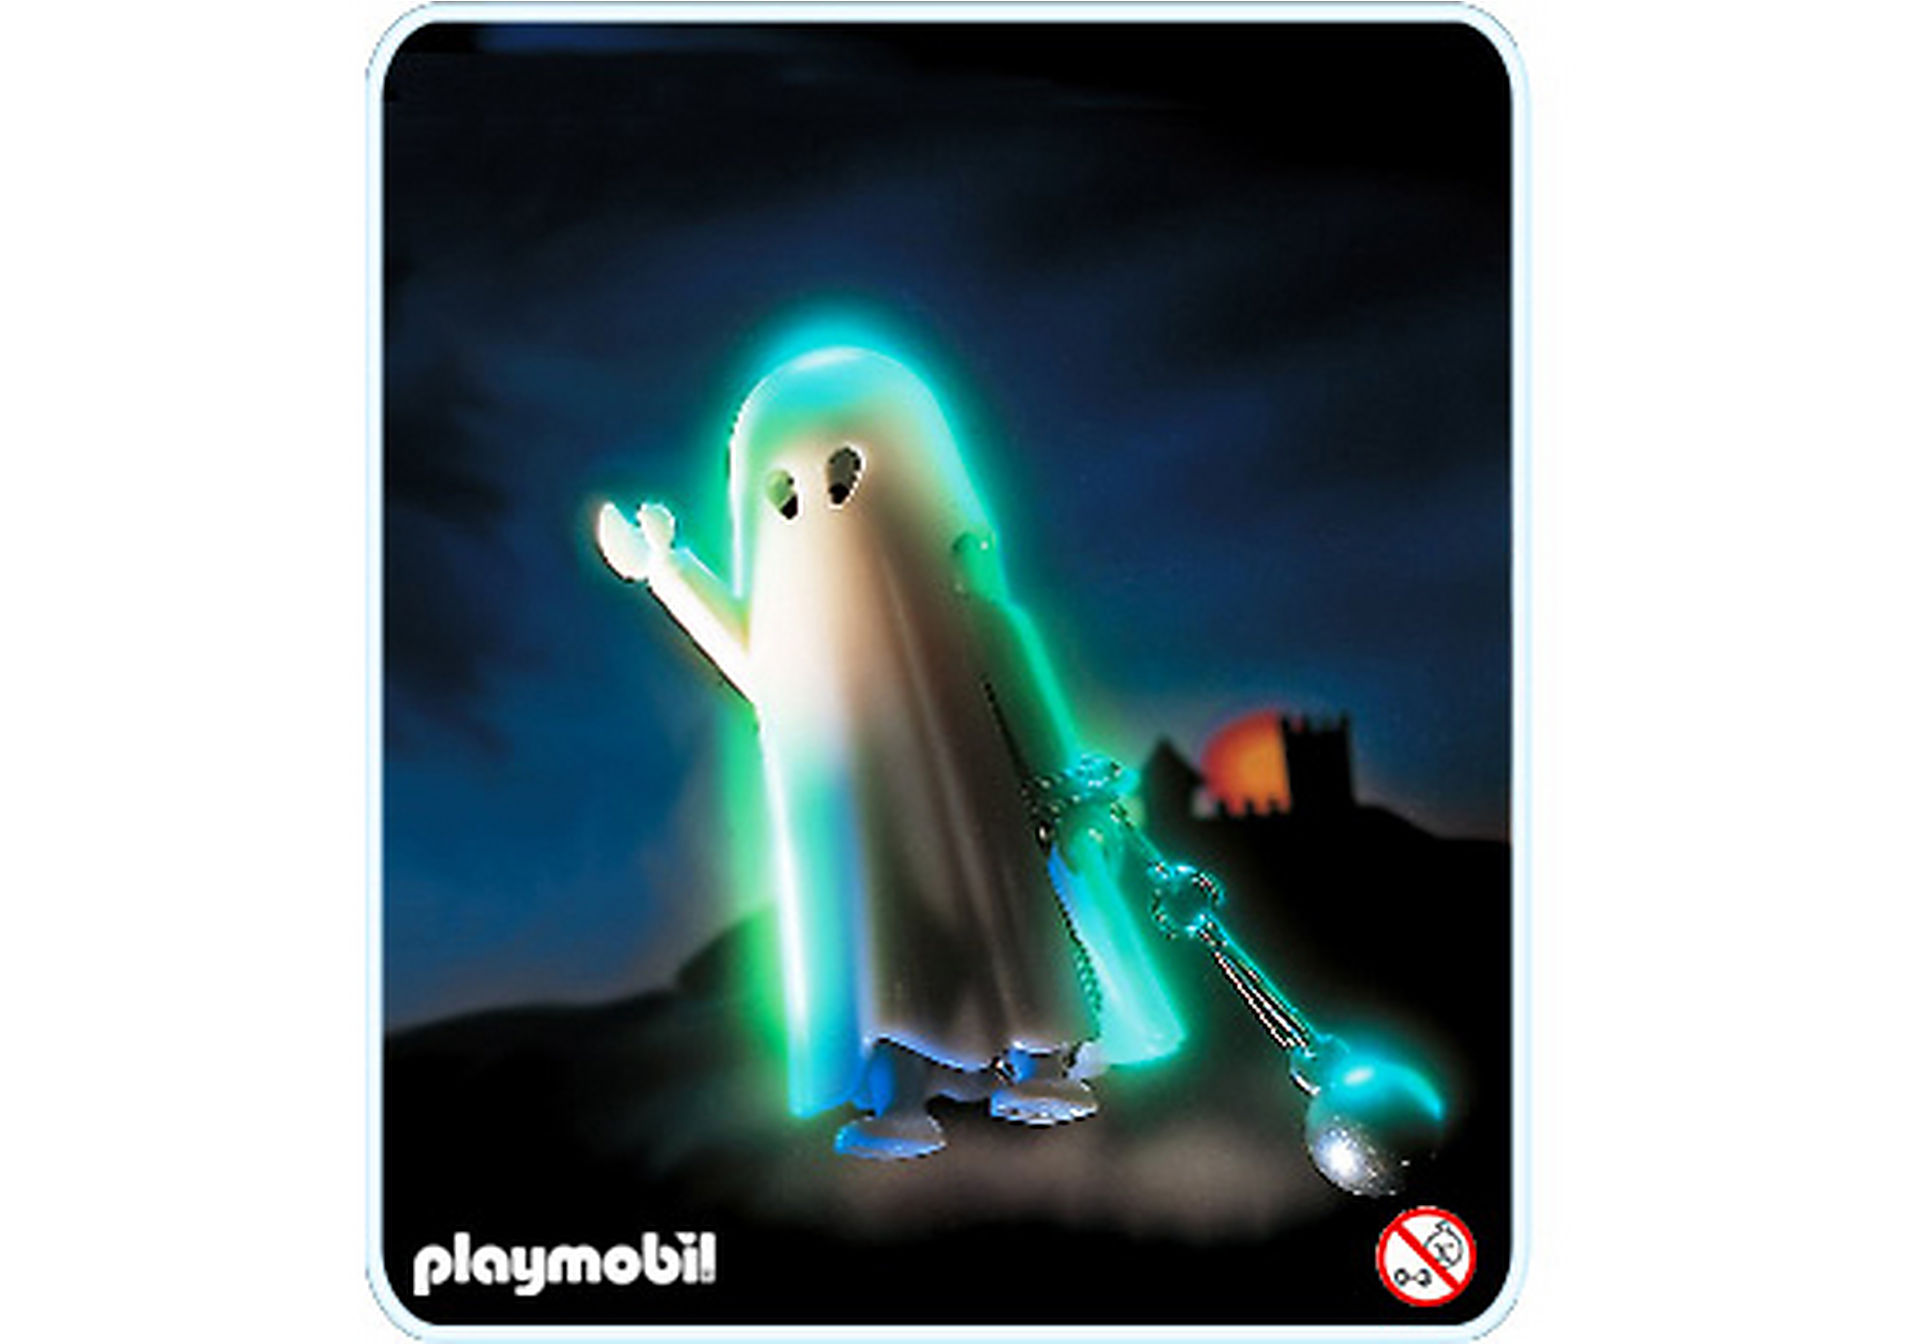 http://media.playmobil.com/i/playmobil/3317-A_product_detail/Schloßgespenst